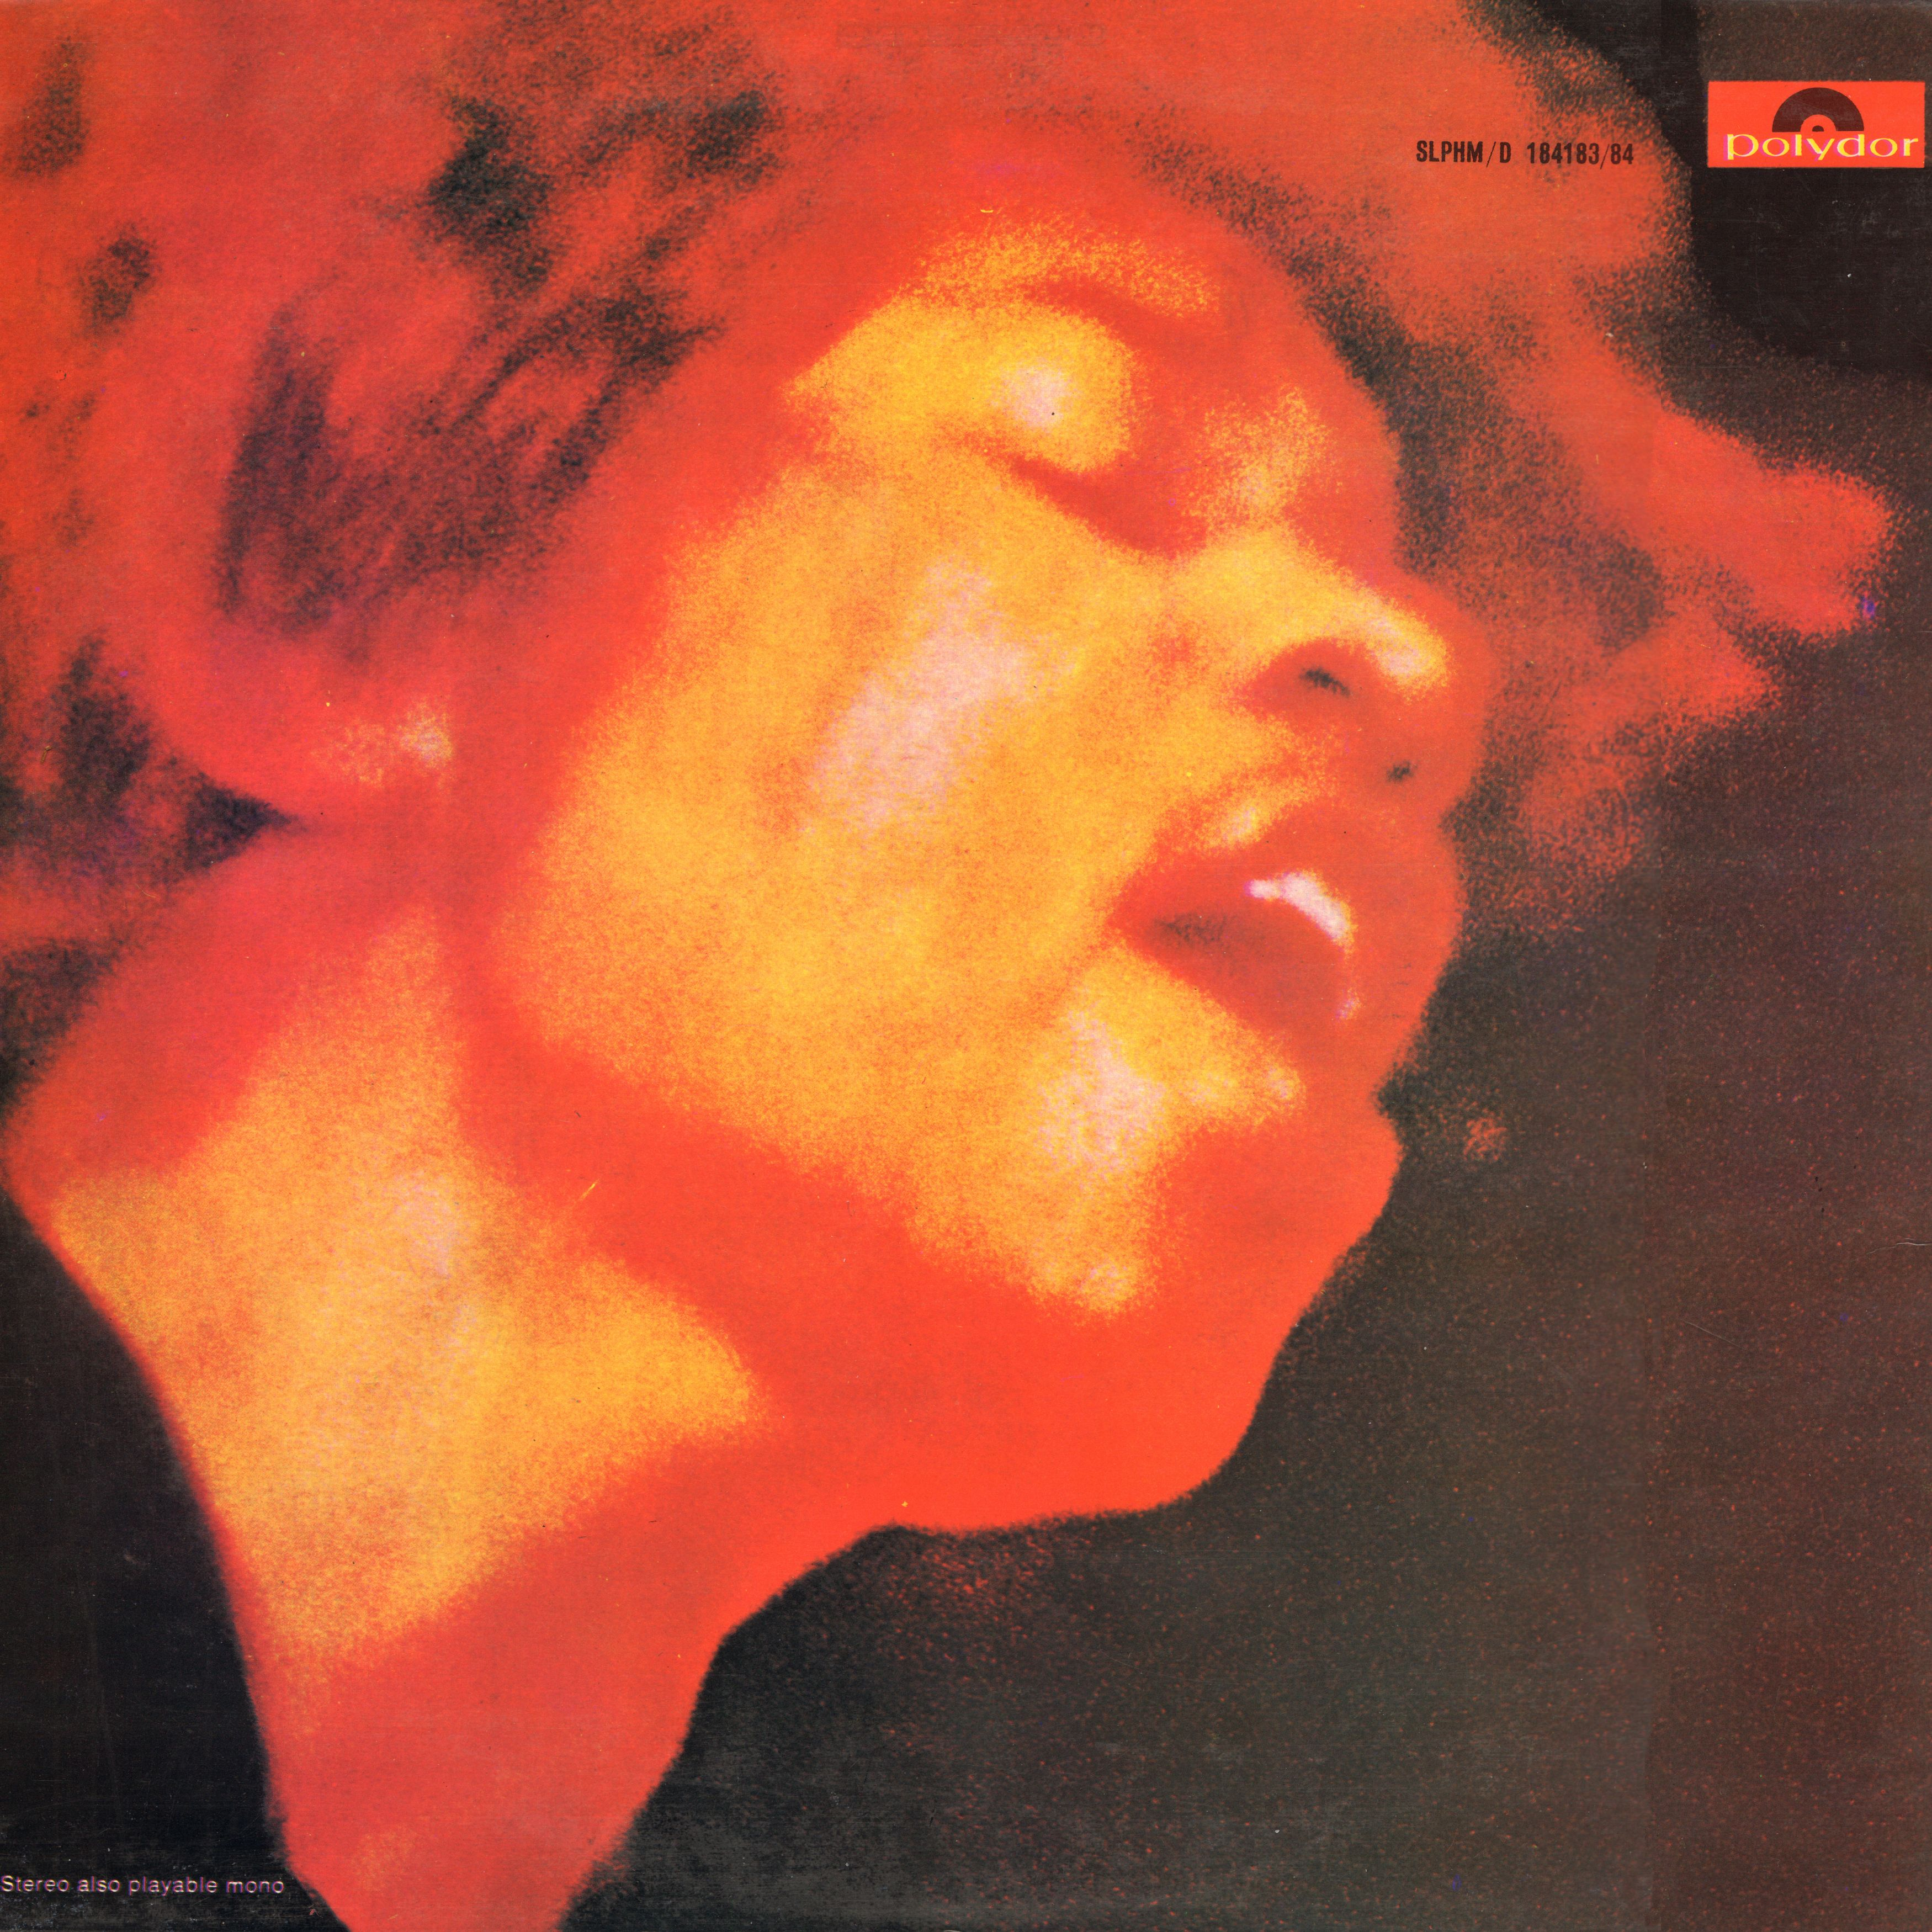 Discographie : Rééditions & Compilations - Page 13 Jimi%20Hendrix%20-%20Electric%20Ladyland%20-%20Polydor%20SLPHM-D-184183-84%20-%20Back%20Italy